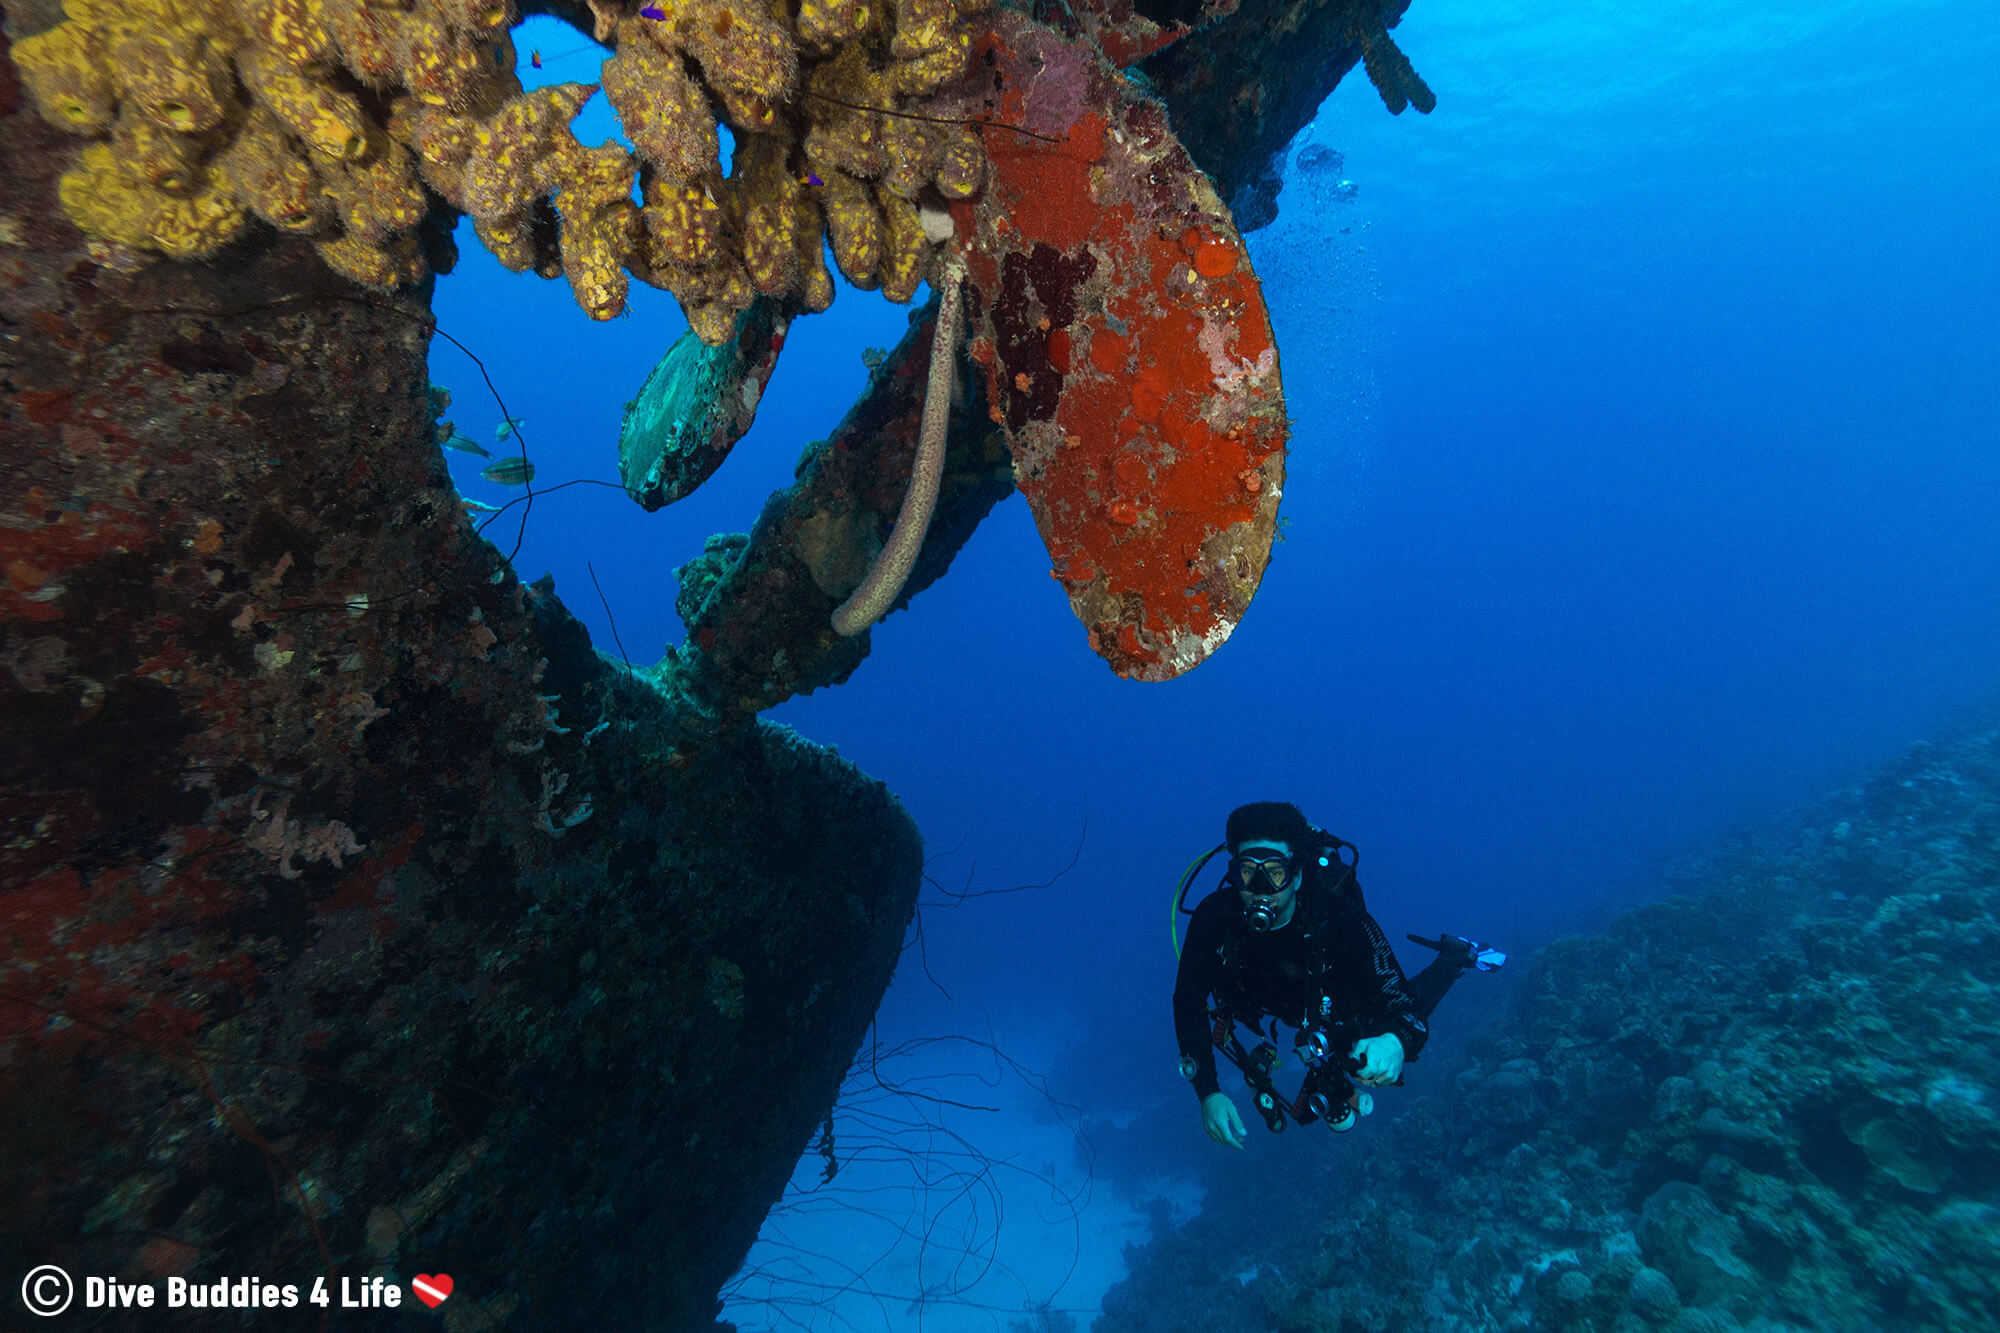 Scuba Diving Joey Exploring The Propeller Of The Hilma Hooker Shipwreck In Bonaire, Dutch Caribbean